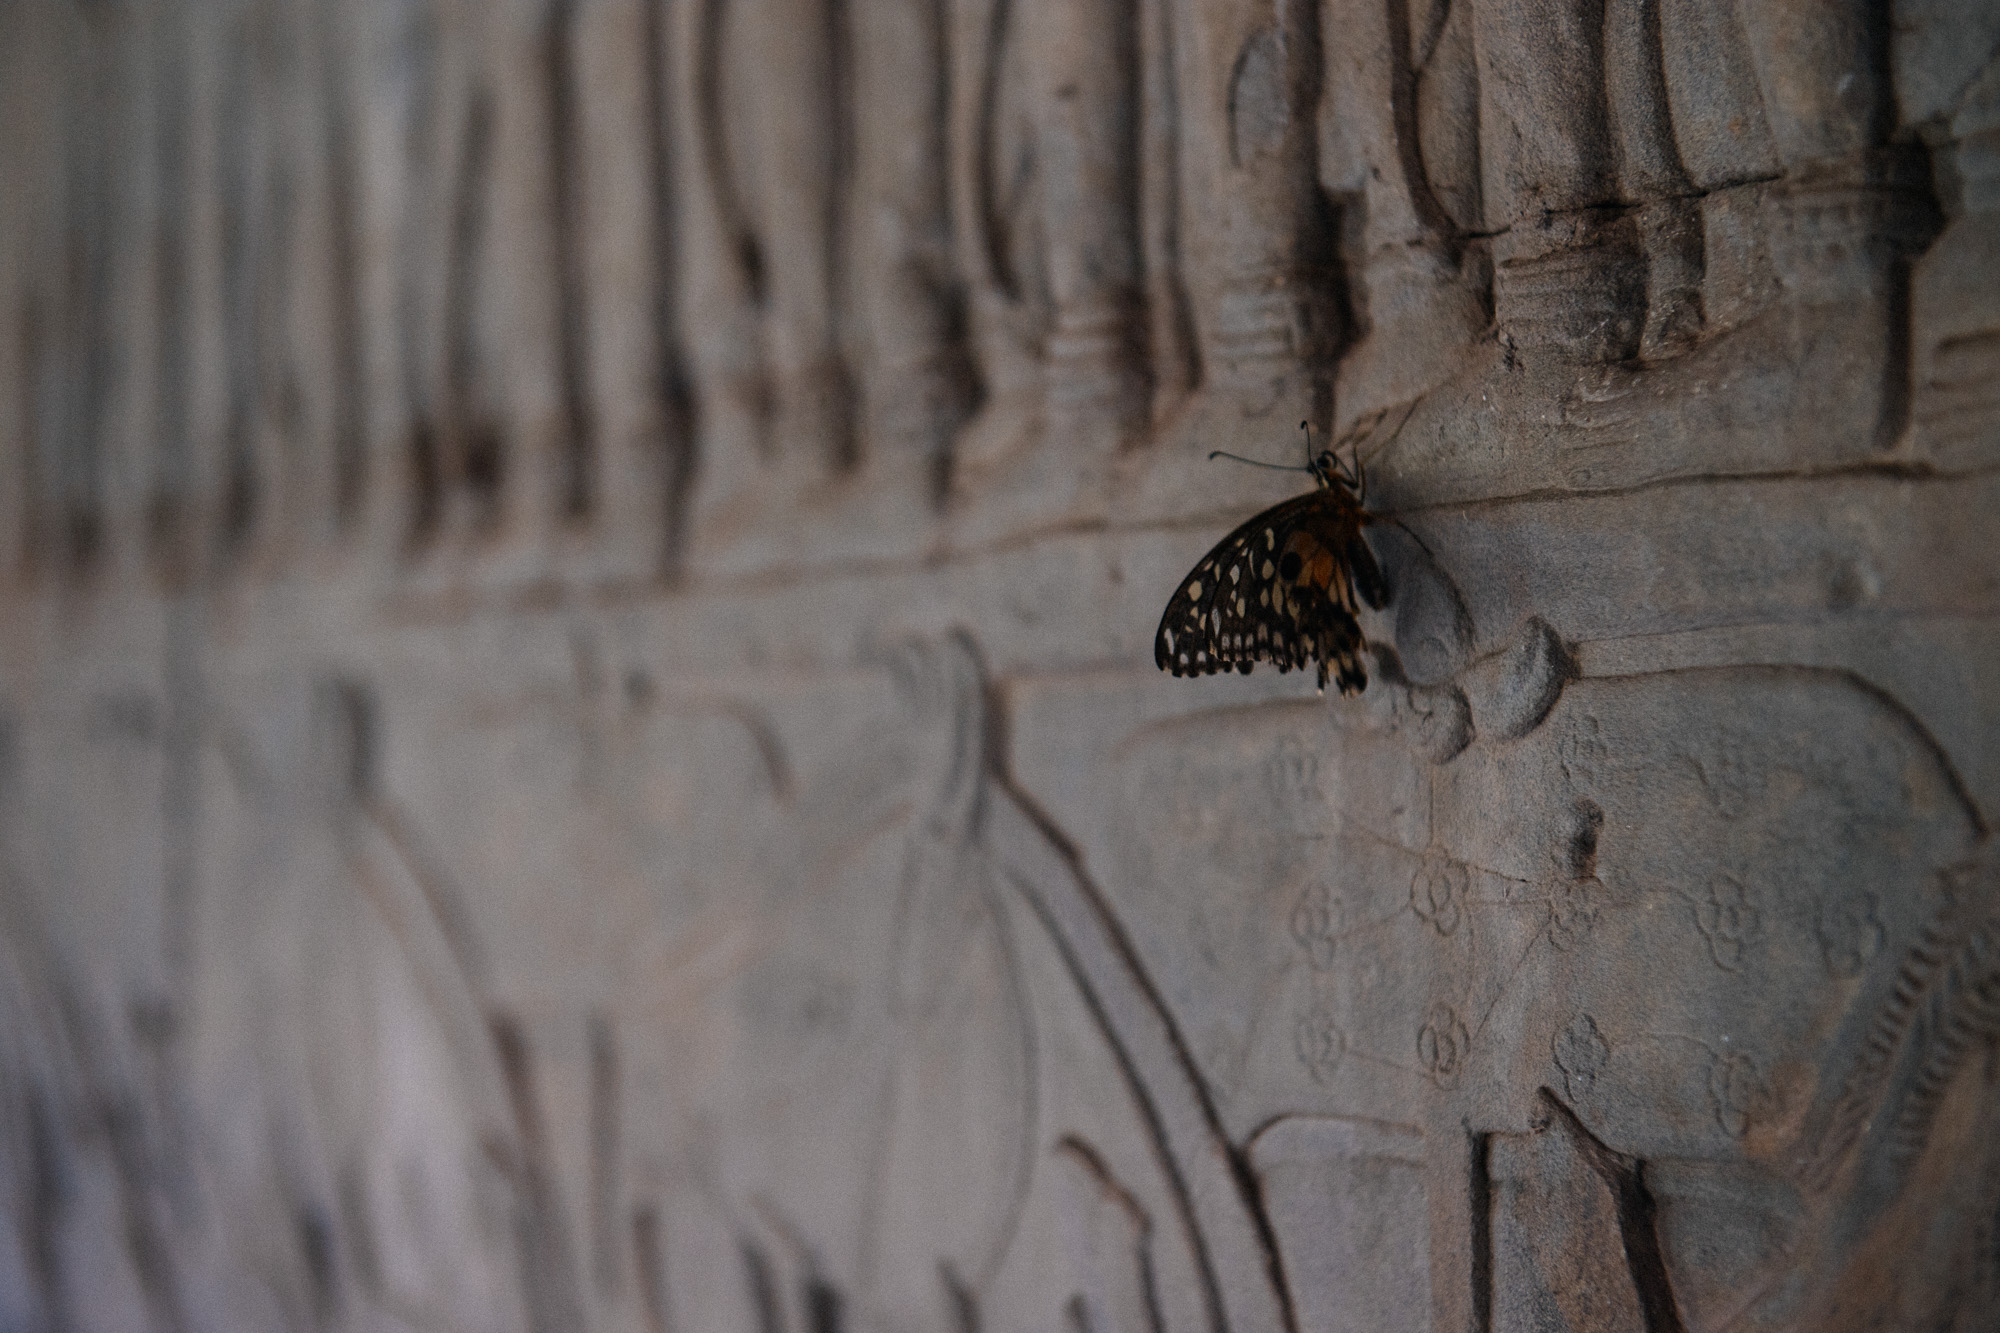 A butterfly rests on the centuries old engraving on the north side of the Angkor Wat.